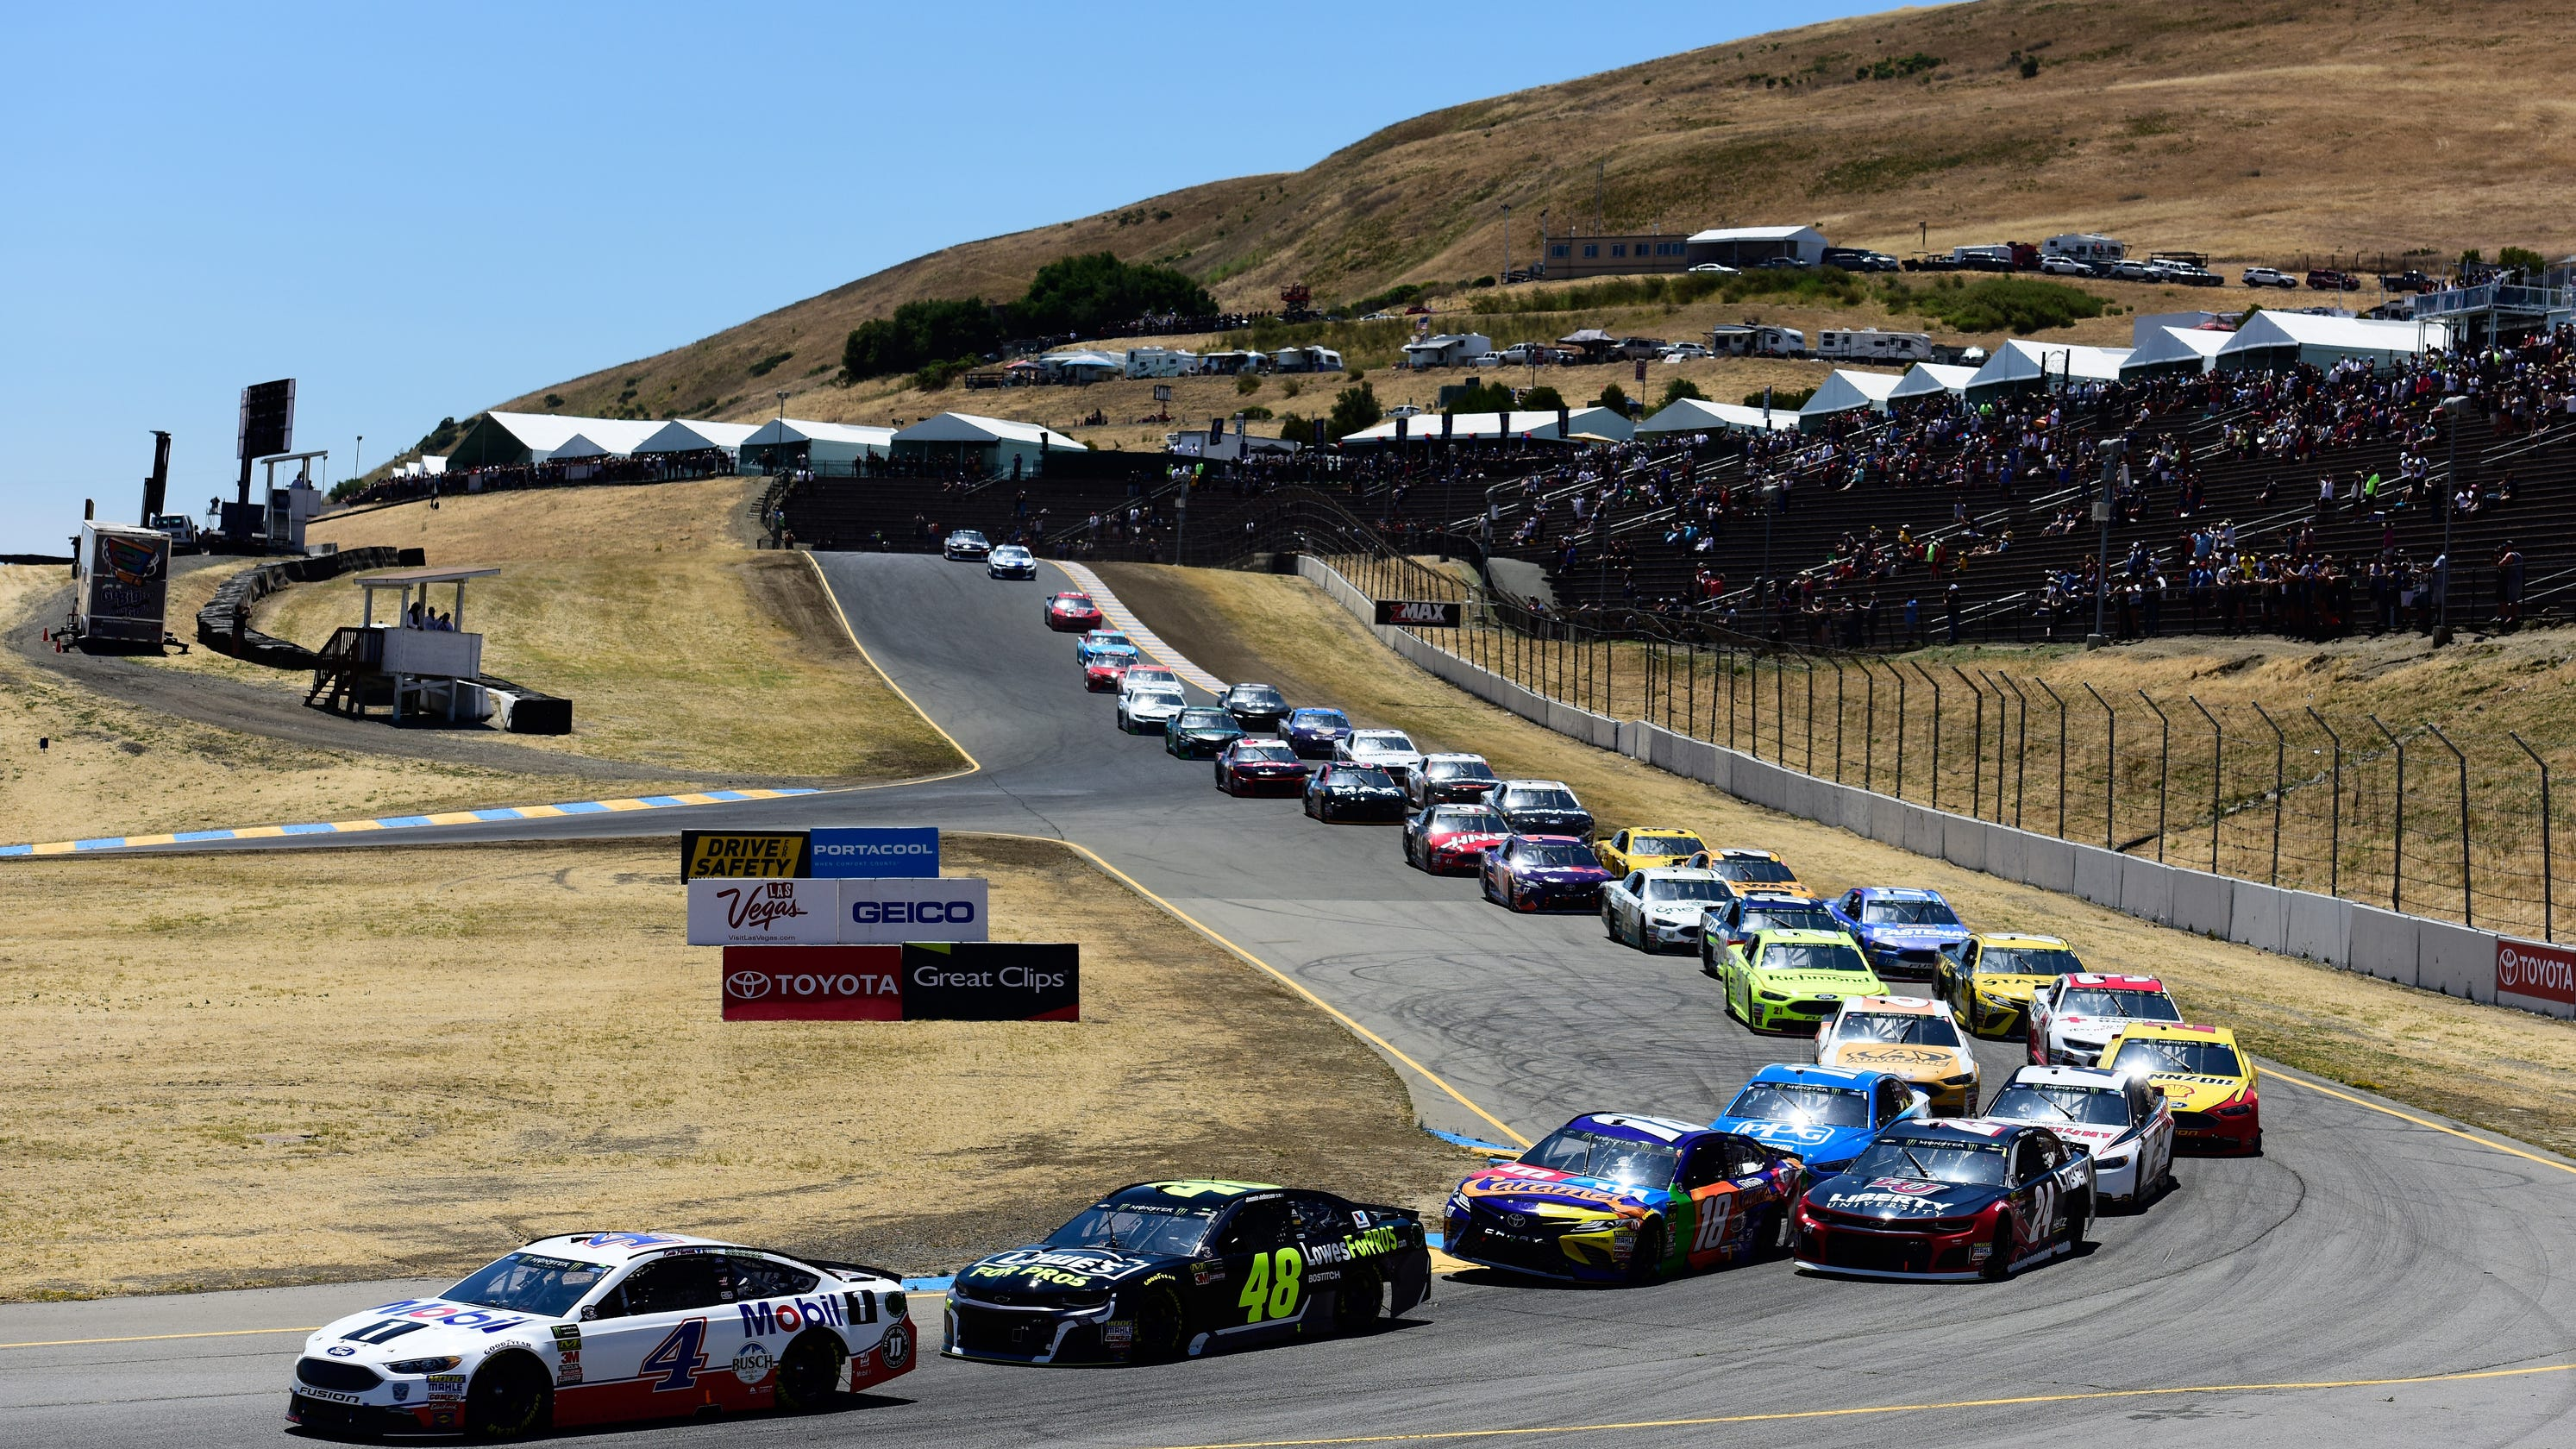 NASCAR at Sonoma: Longer course, more turns will test drivers' skill